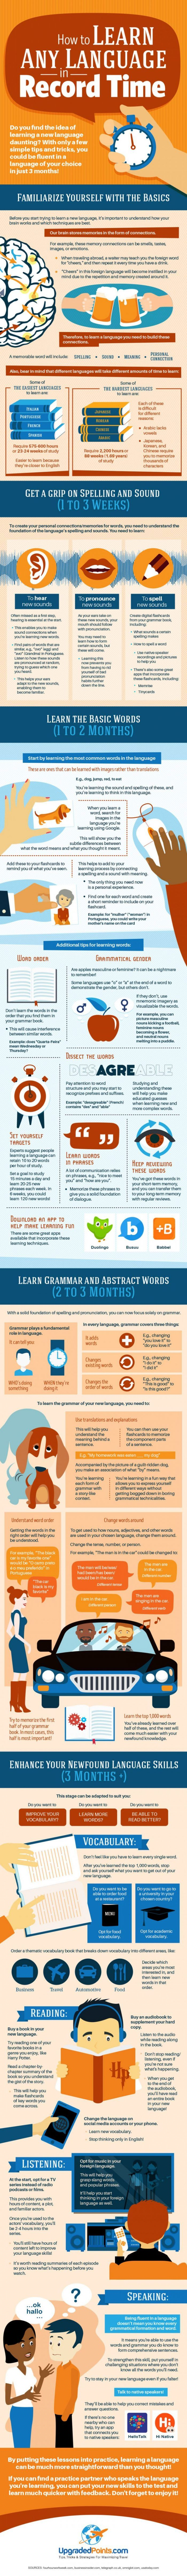 How-To-Learn-Any-Language-In-Record-Time-Infographic-768x10607-700x9668.jpg (700×9668)